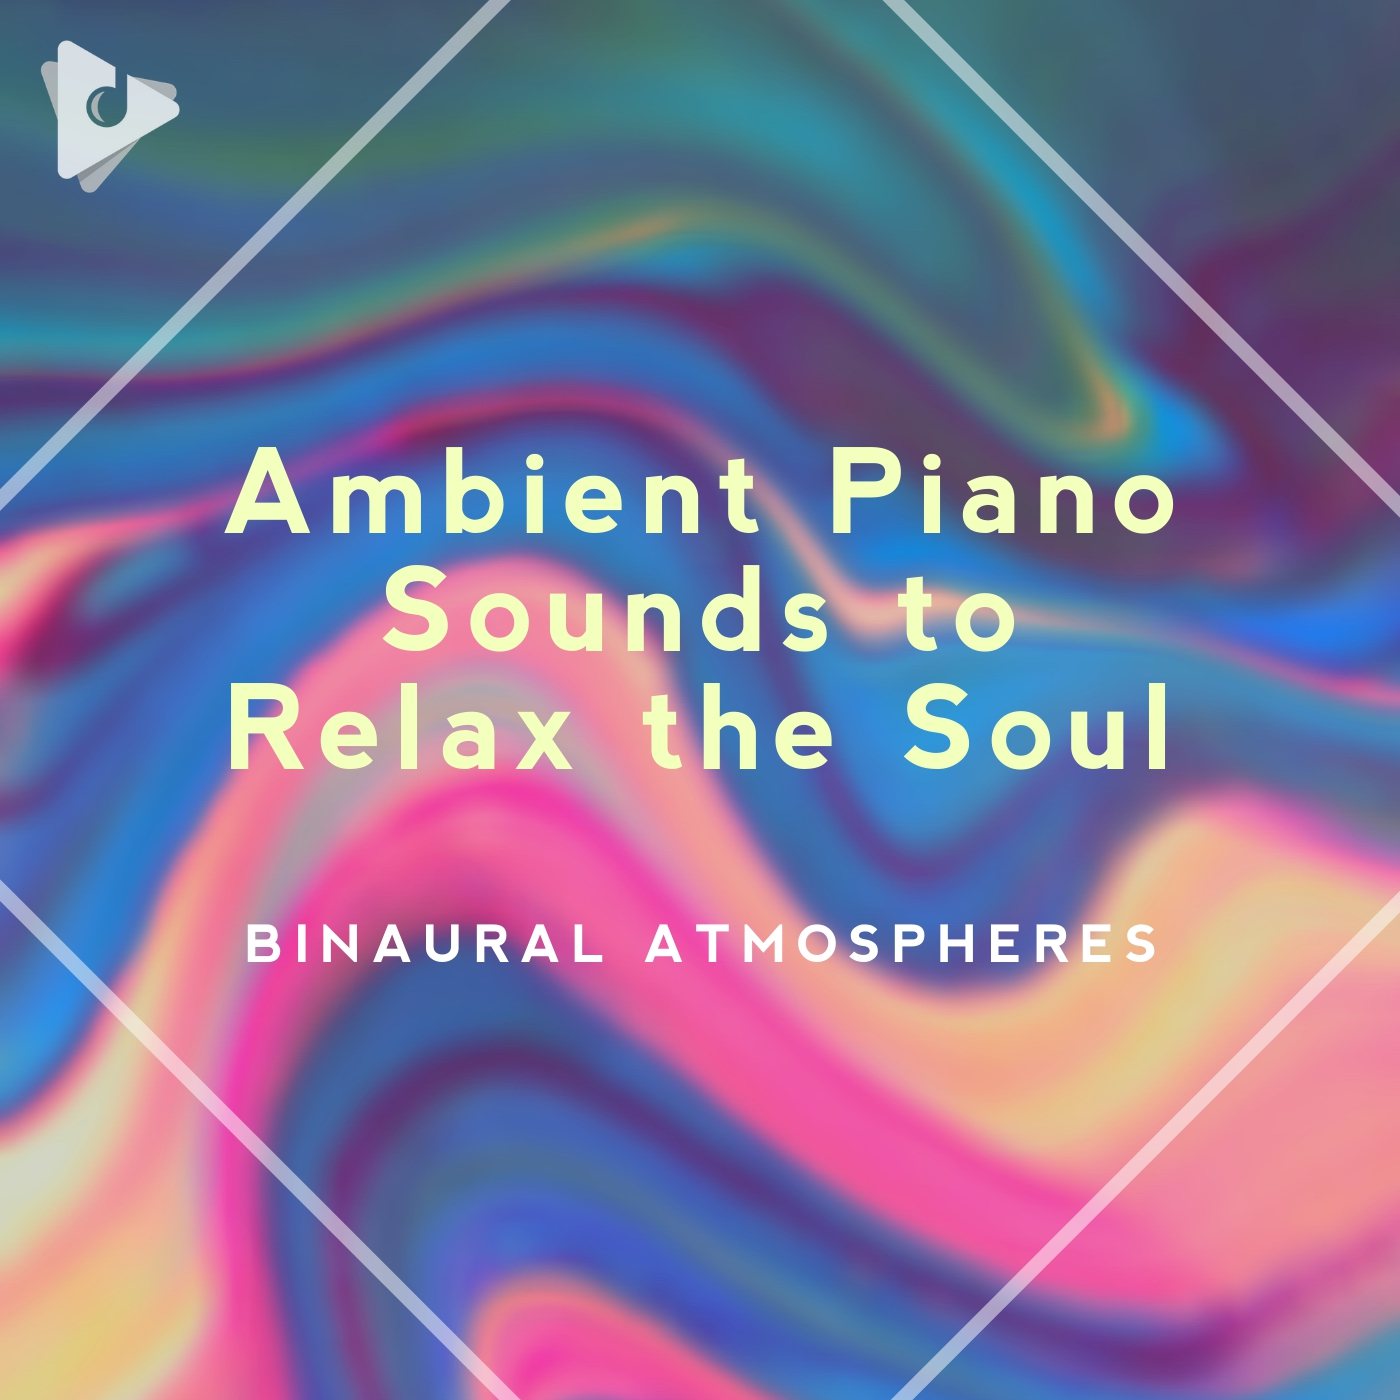 Ambient Piano Sounds to Relax the Soul